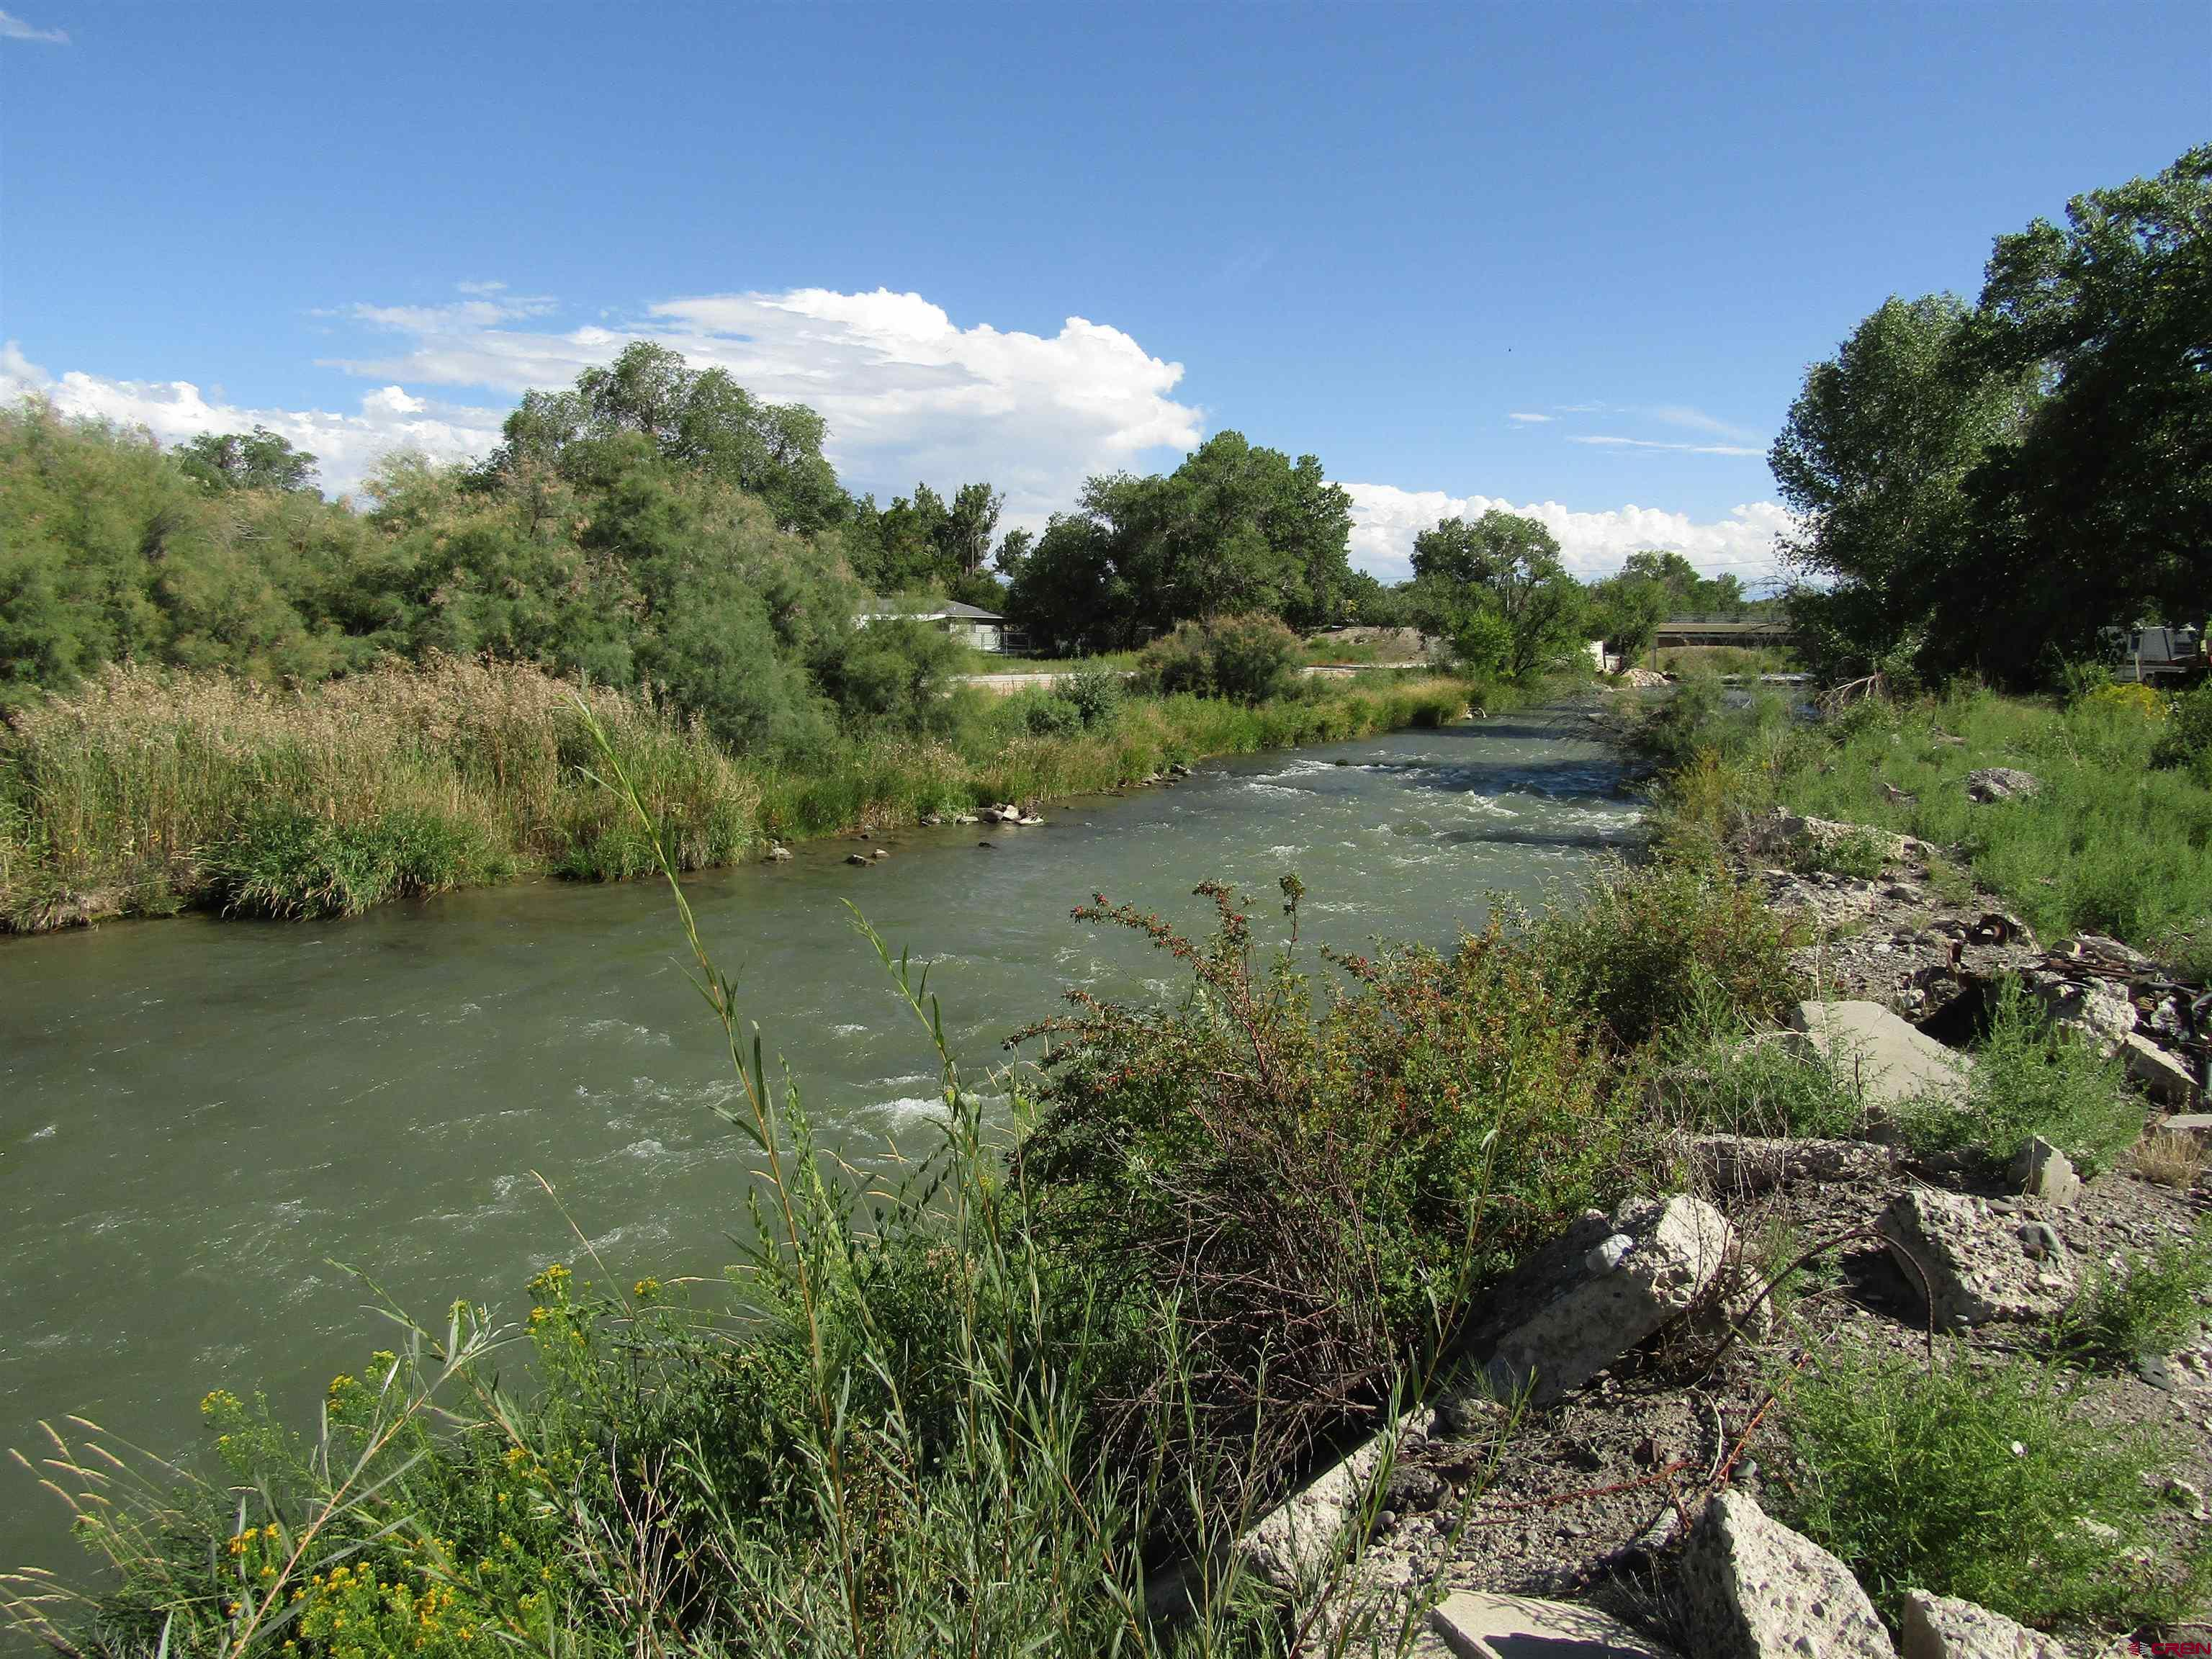 This 4+ acres has over 900' of Uncompahgre River frontage.  Located just west of Montrose, this area of the river is designated gold water fly fishing.  Rivers development potential with possible connectivity to Mayfly development North and to the South.  Montrose water & kayak park.  The development possibilities are endless!  This is the last piece of the puzzle on the river.